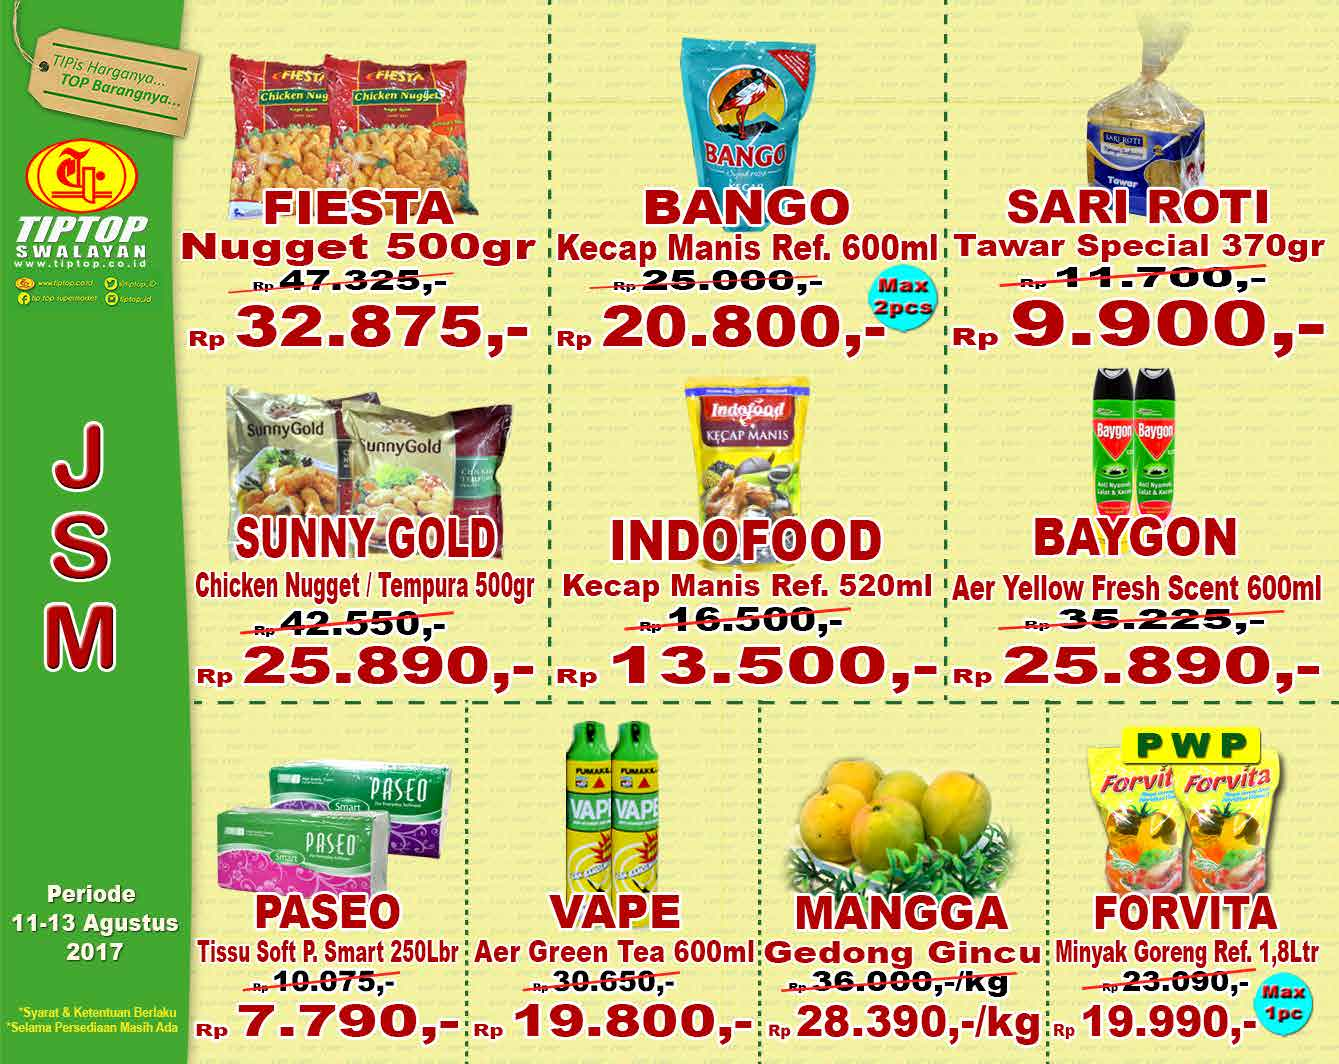 Katalog Tip Top Supermarket 11 Aug 13 Bango Kecap Manis 600ml